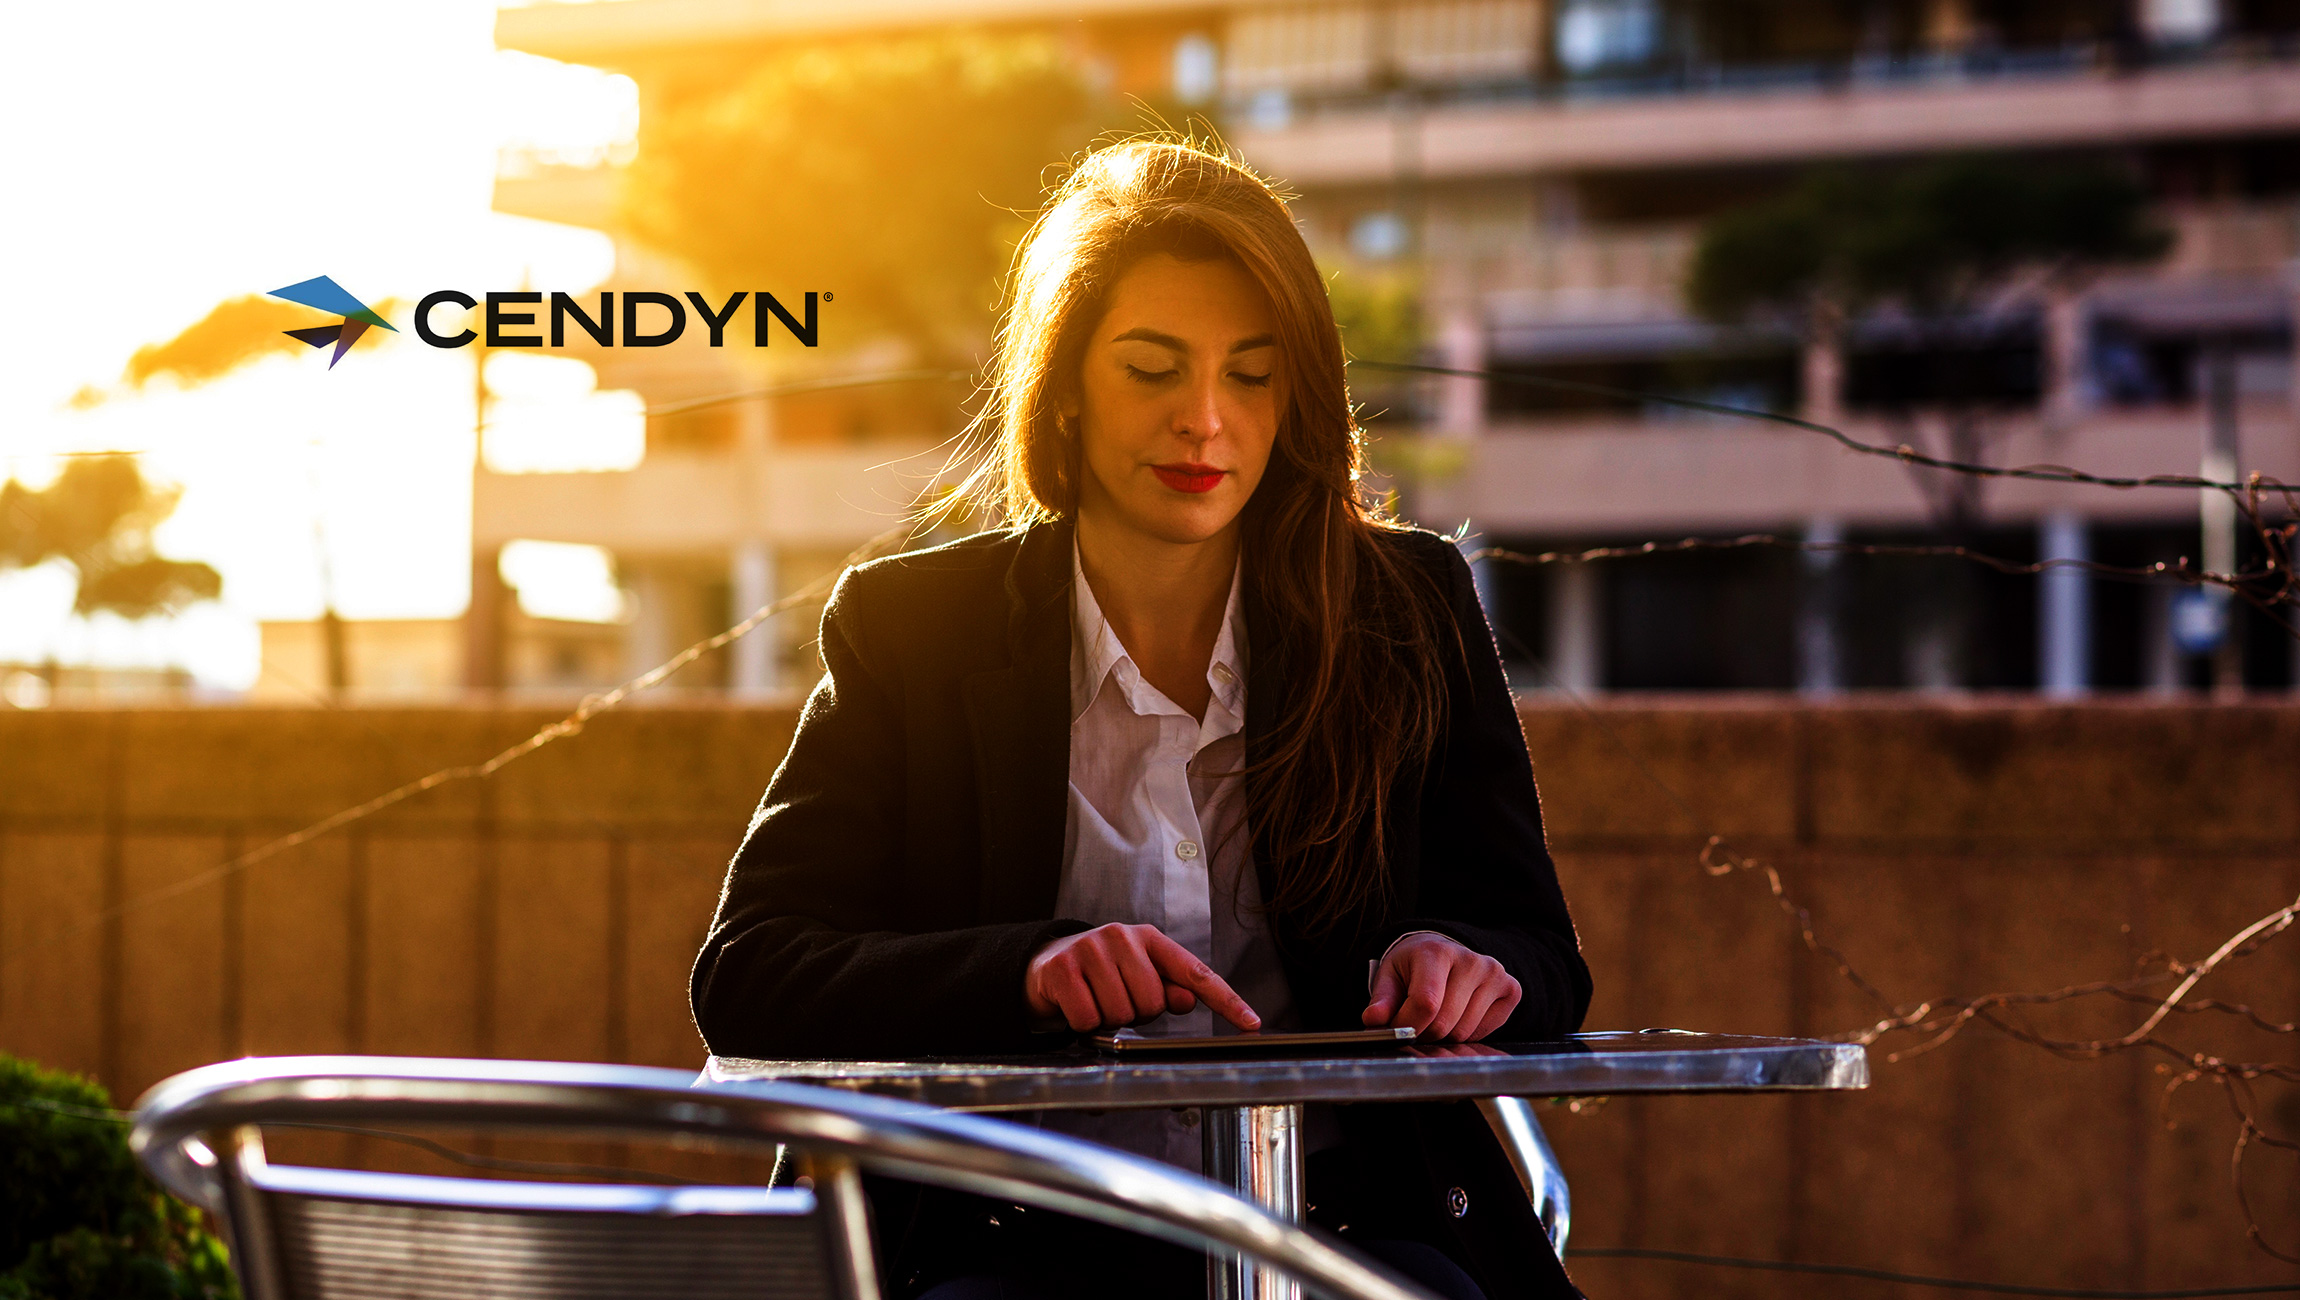 Cendyn is North America's Leading Hotel CRM Technology Provider & Data Driven Marketing Agency for 2019 as Voted by Prestigious World Travel Awards